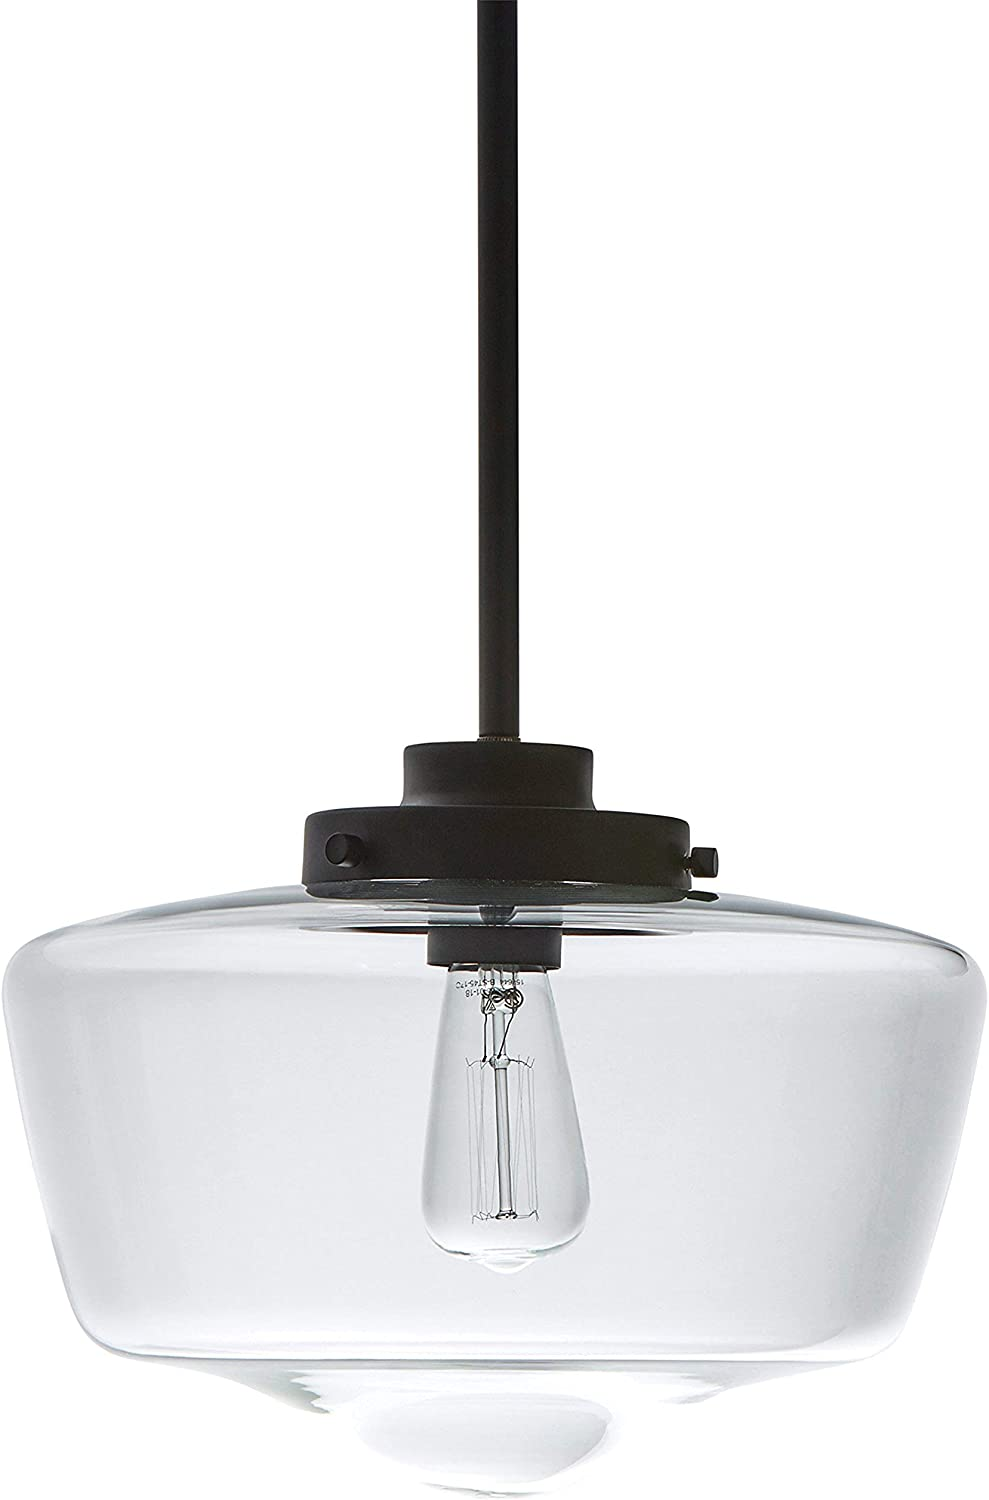 Stone Beam Schoolhouse Ceiling Pendant Fixture With Light Bulb And Clear Glass Shade – 11 x 11 x 18 Inches, 6 – 48 Inch Cord, Matte Black